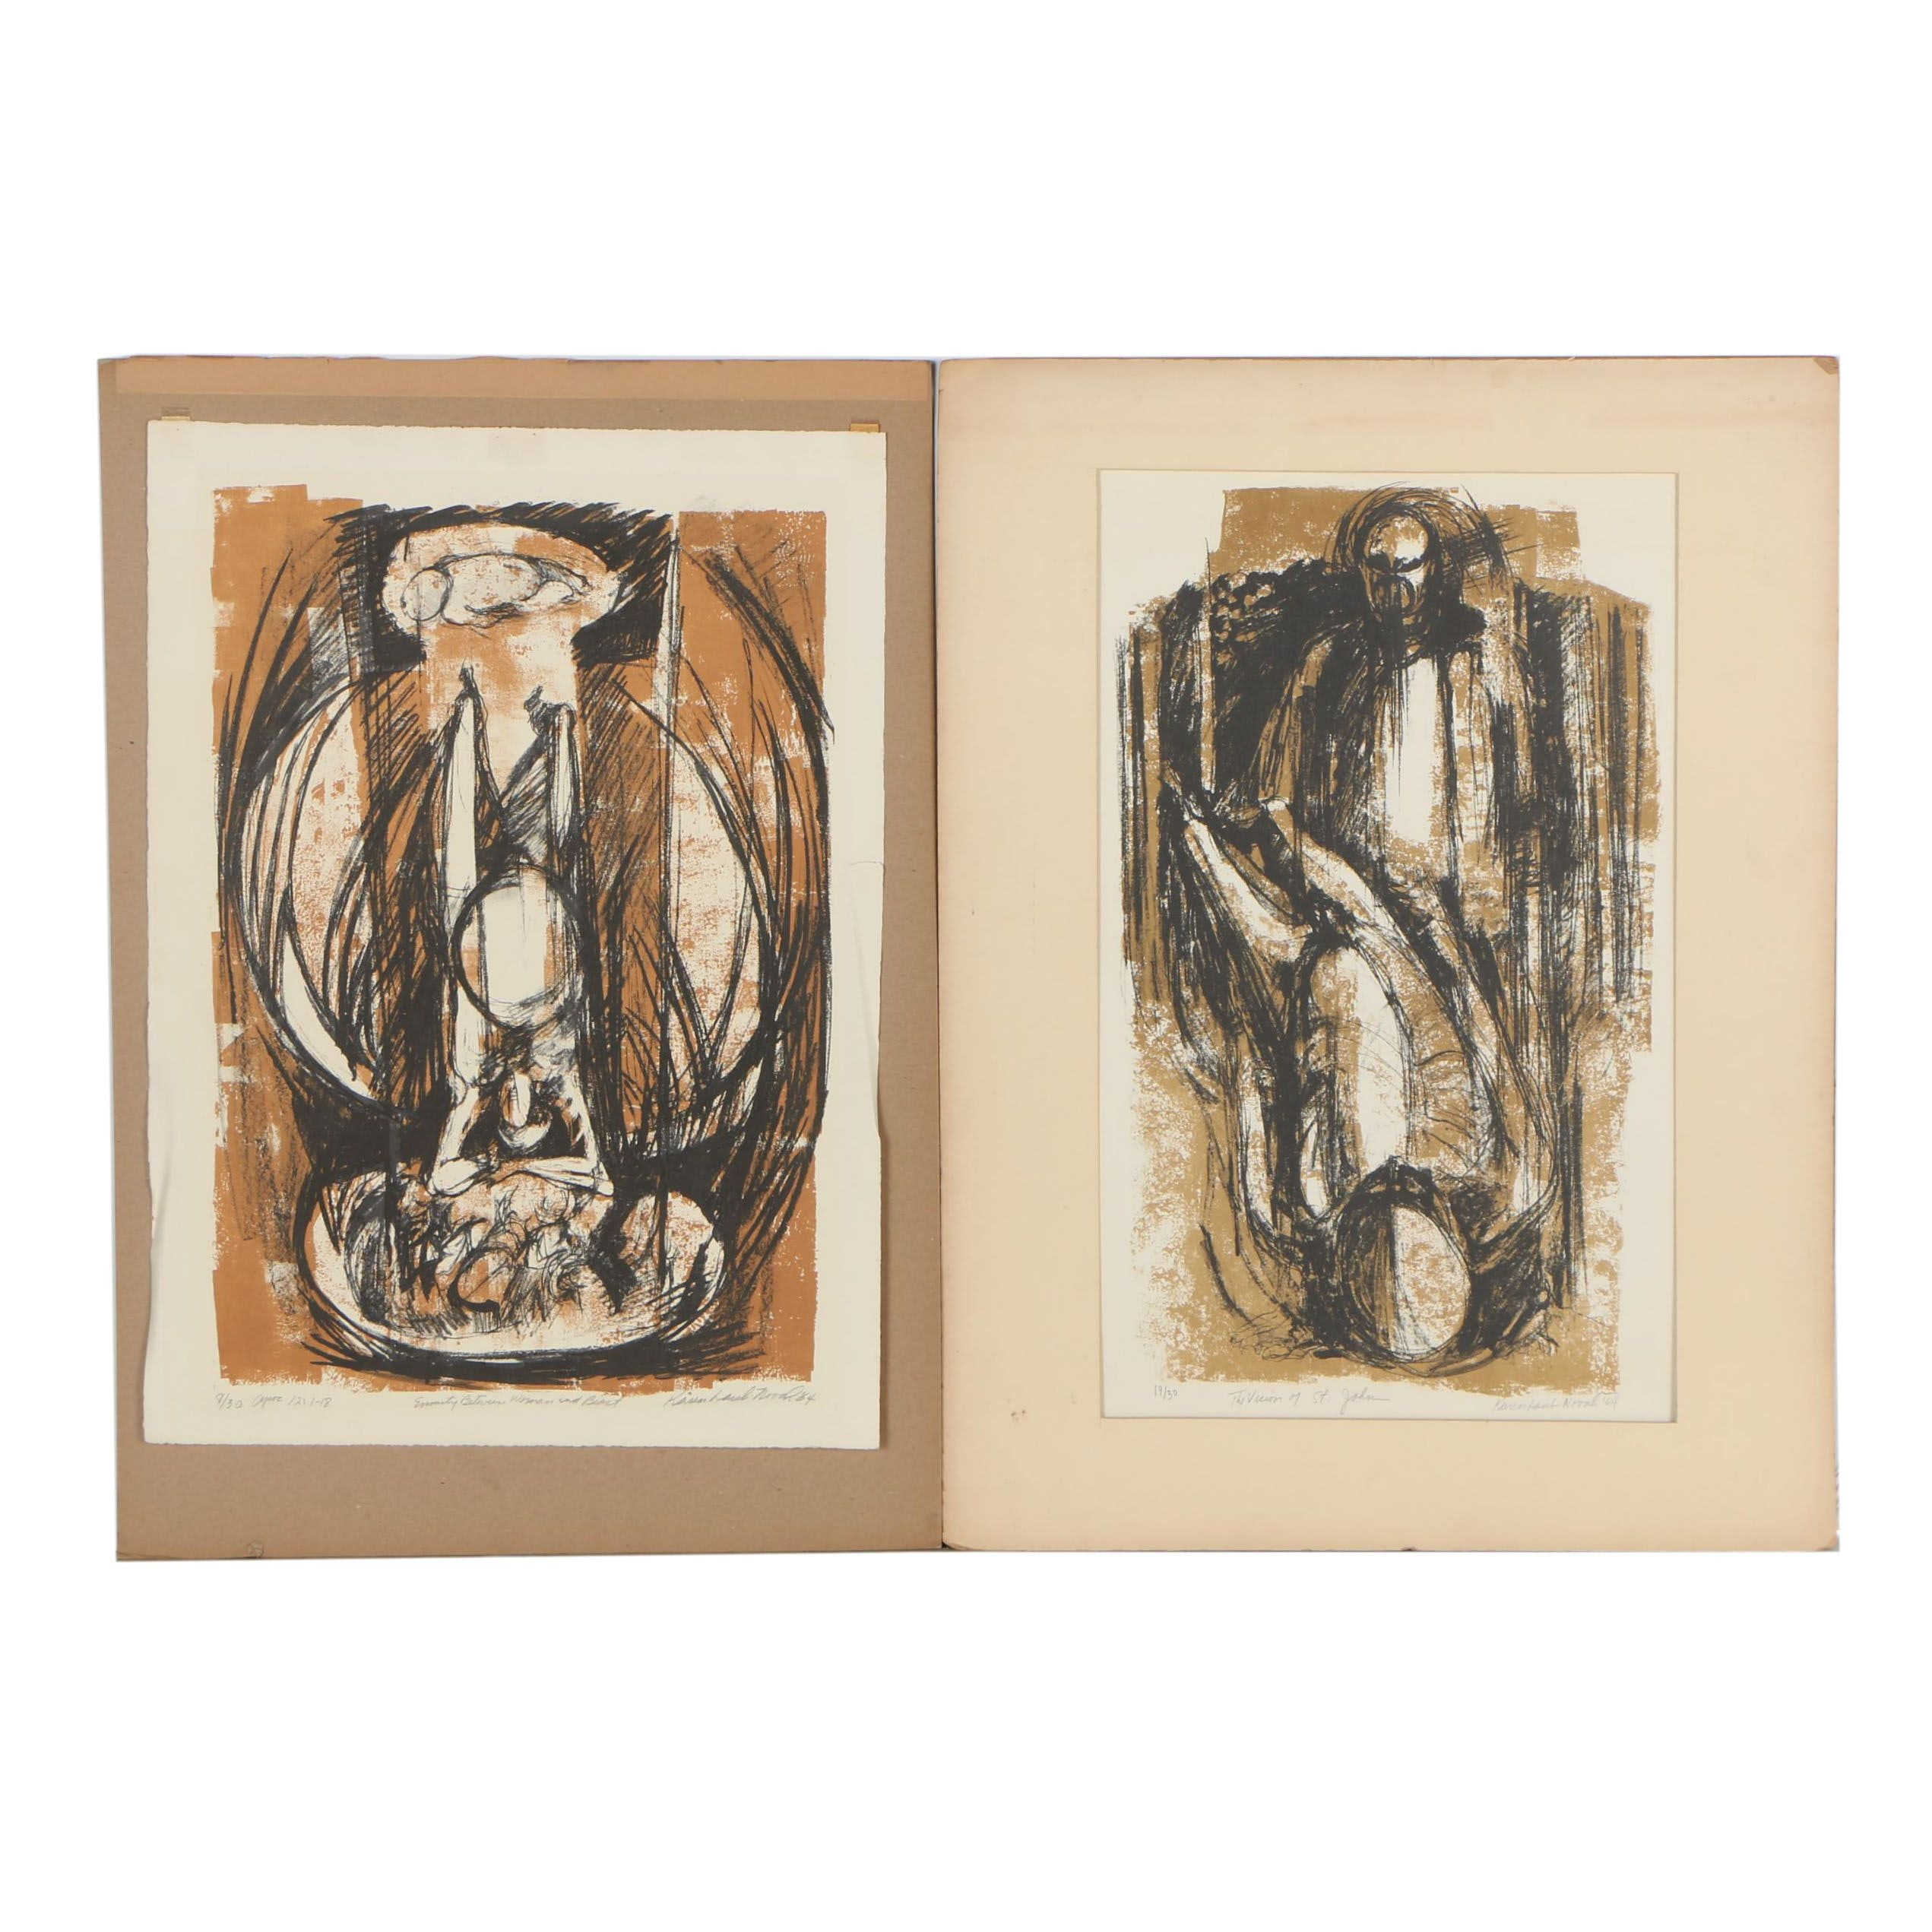 Karen Laub-Novak 1964 Abstract Lithographs